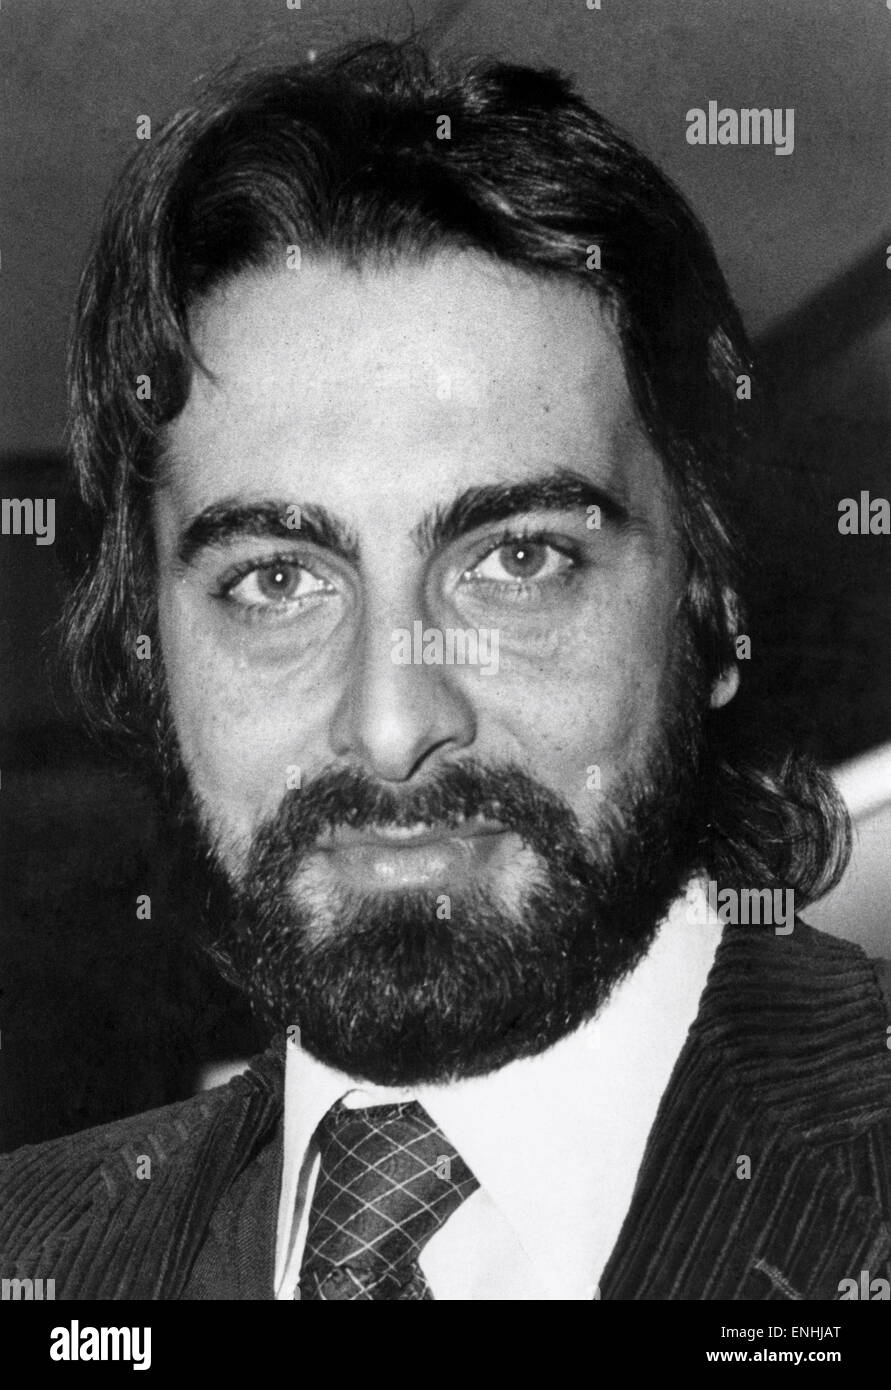 Kabir Bedi, the 33 years old Indian actor, photographed during his recent London visit. May 1979. - Stock Image